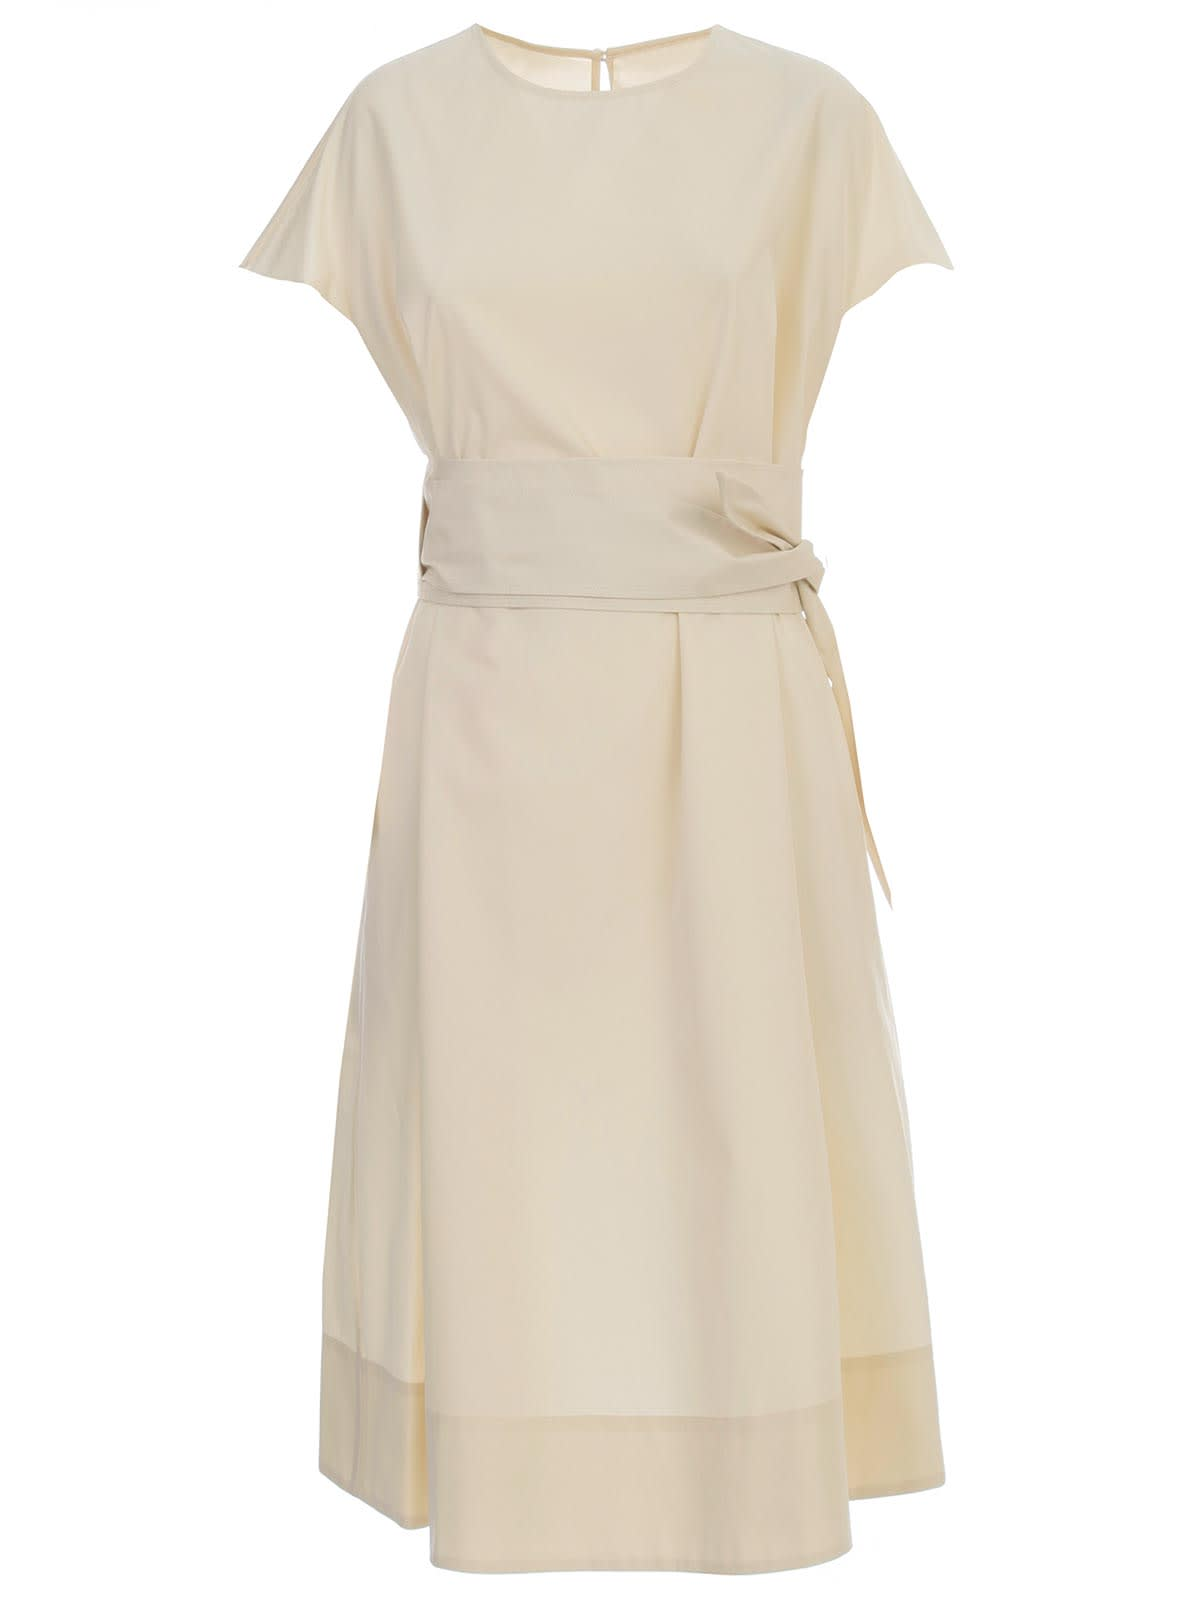 Buy Aspesi Dress S/s W/kimono Belt online, shop Aspesi with free shipping